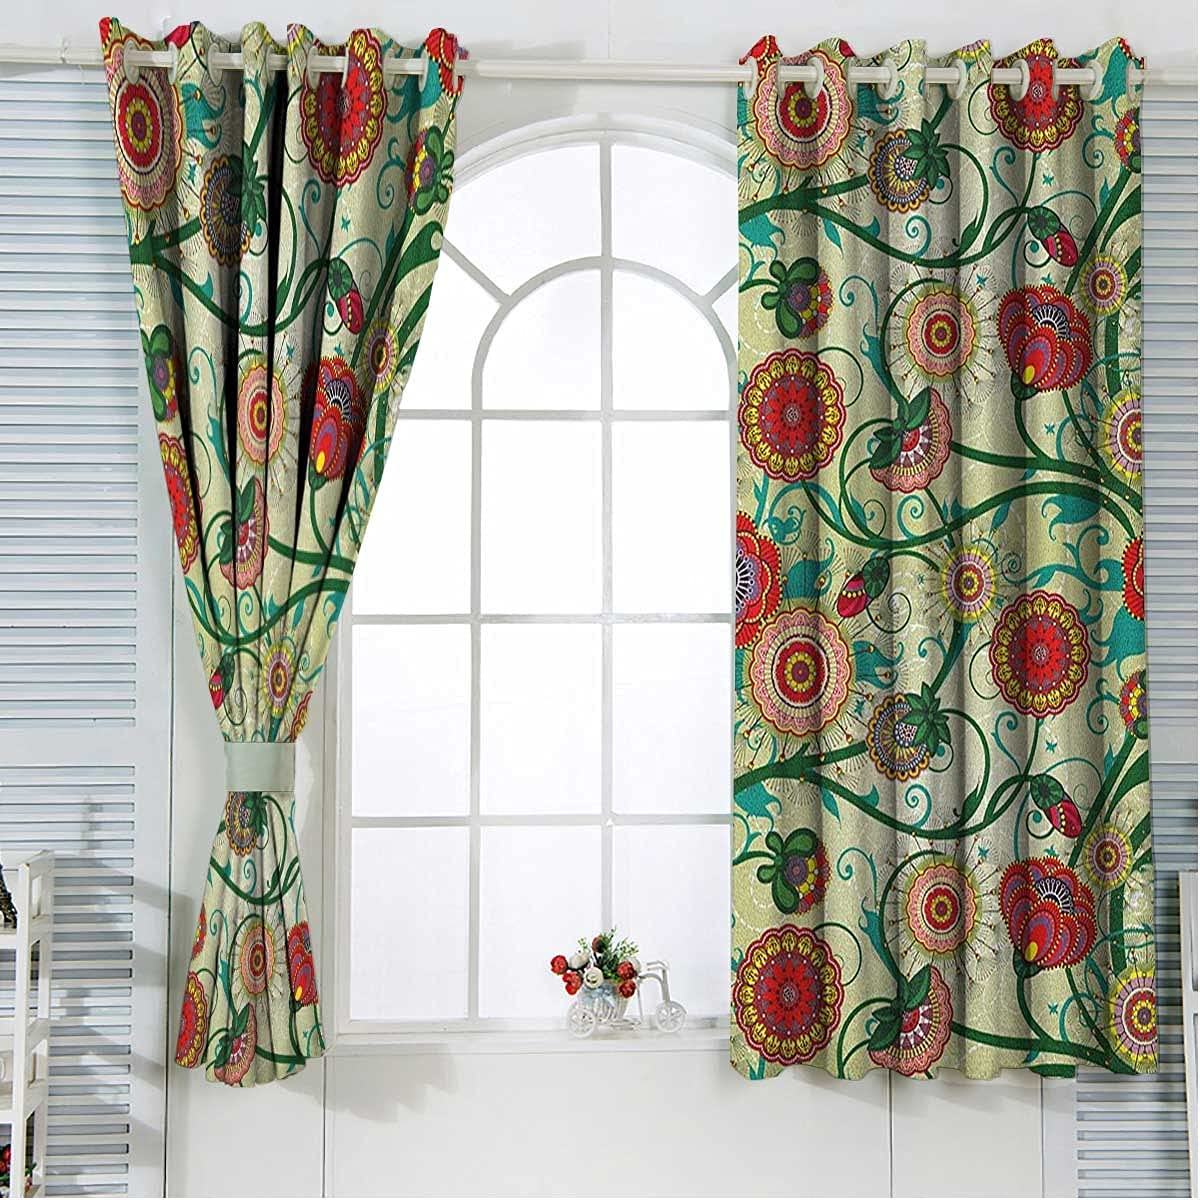 Floral Noise Cancelling Curtains 84 Ki Max 46% Ranking TOP15 OFF Inches Multicolor Length